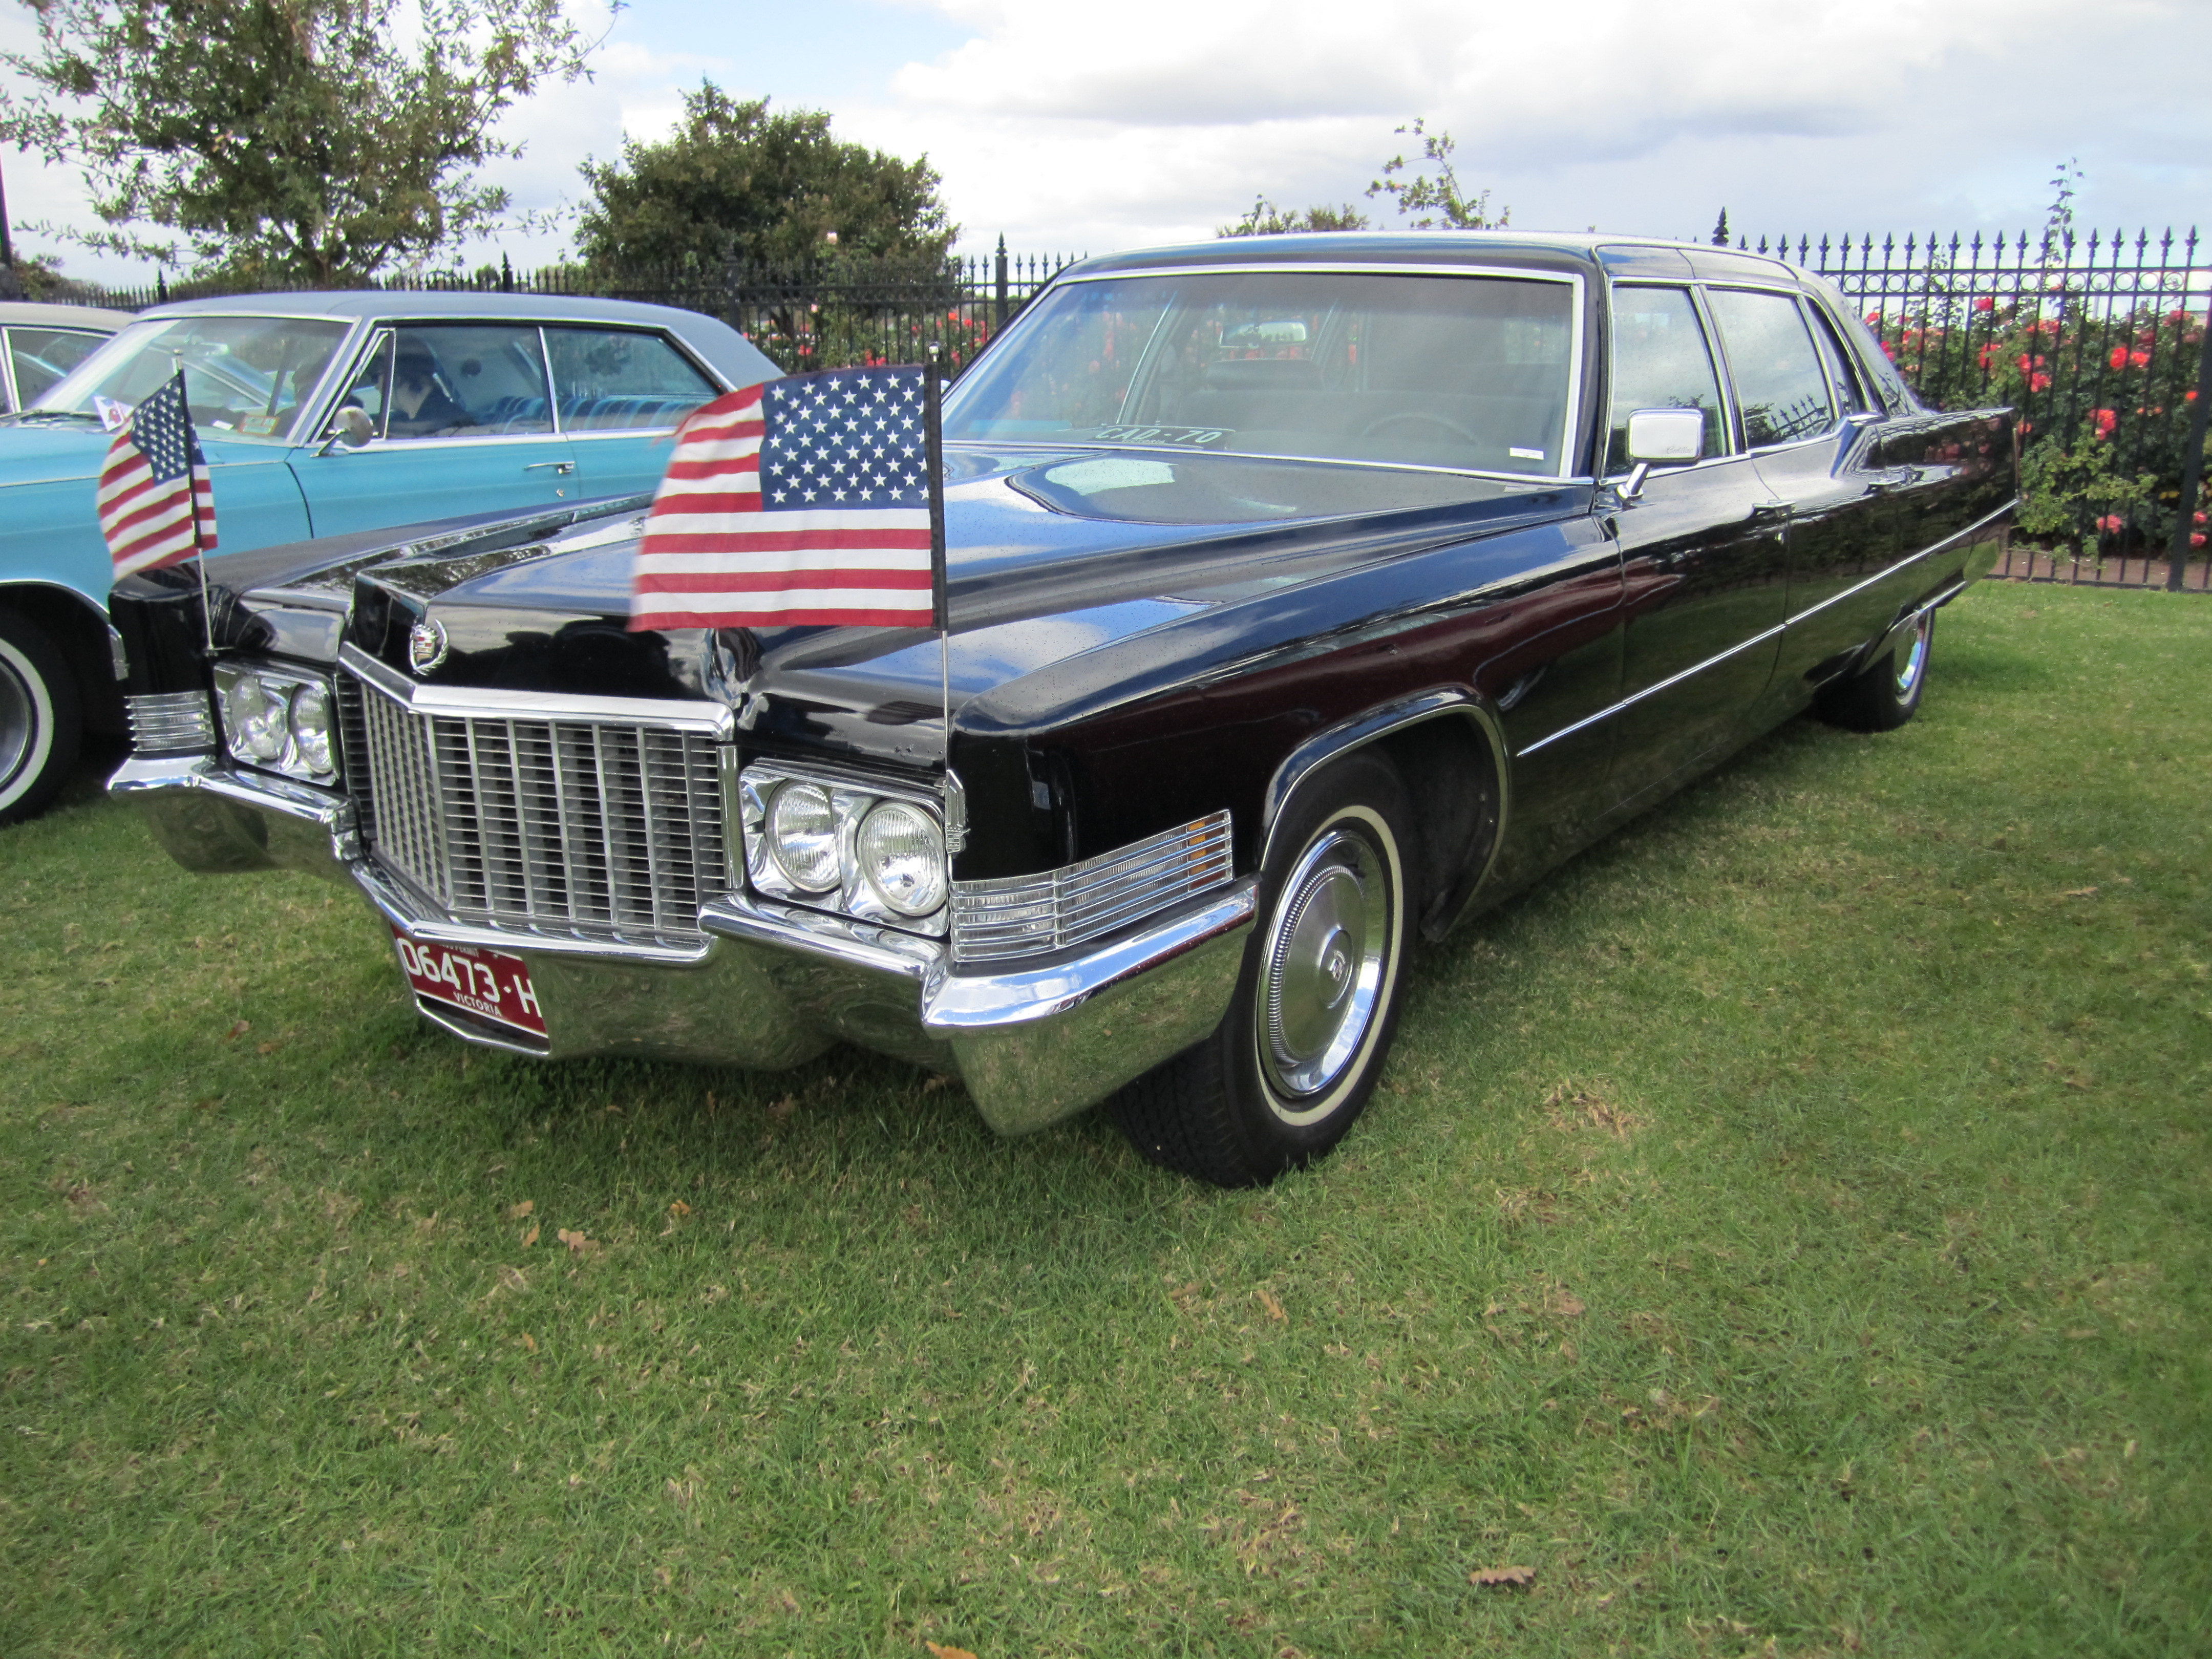 File:1970 Cadillac Fleetwood.jpg - Wikimedia Commons